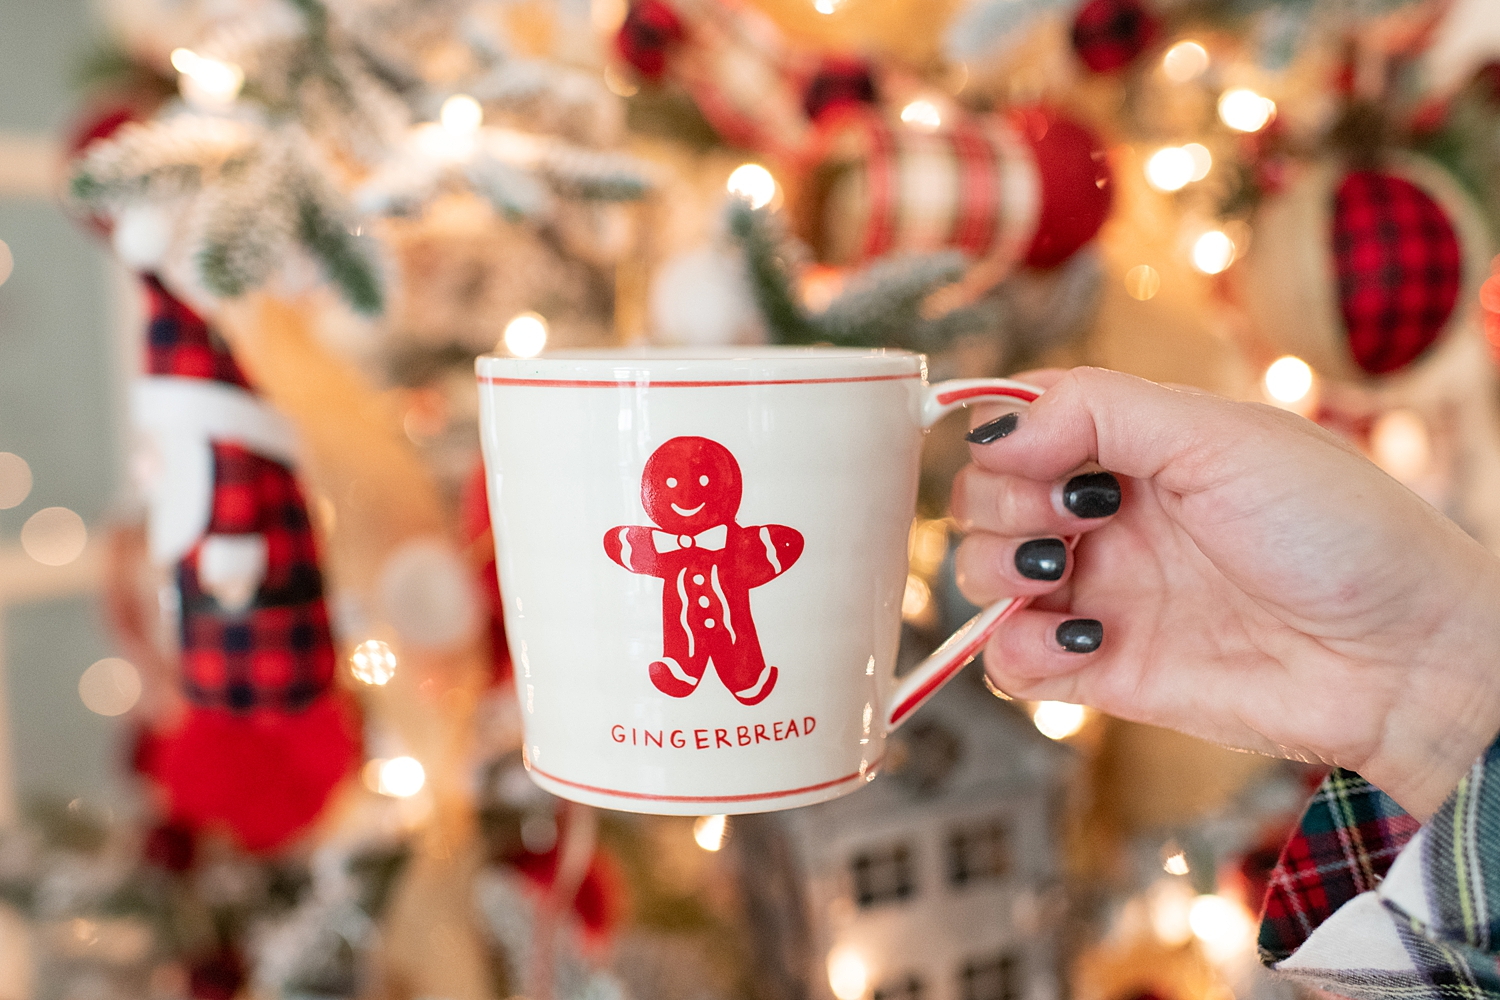 """Holiday Pjs & Top Macy's Christmas Gifts featured by top Houston life and style blog, Fancy Ashley"""" image of a Christmas mug available at Macy's"""